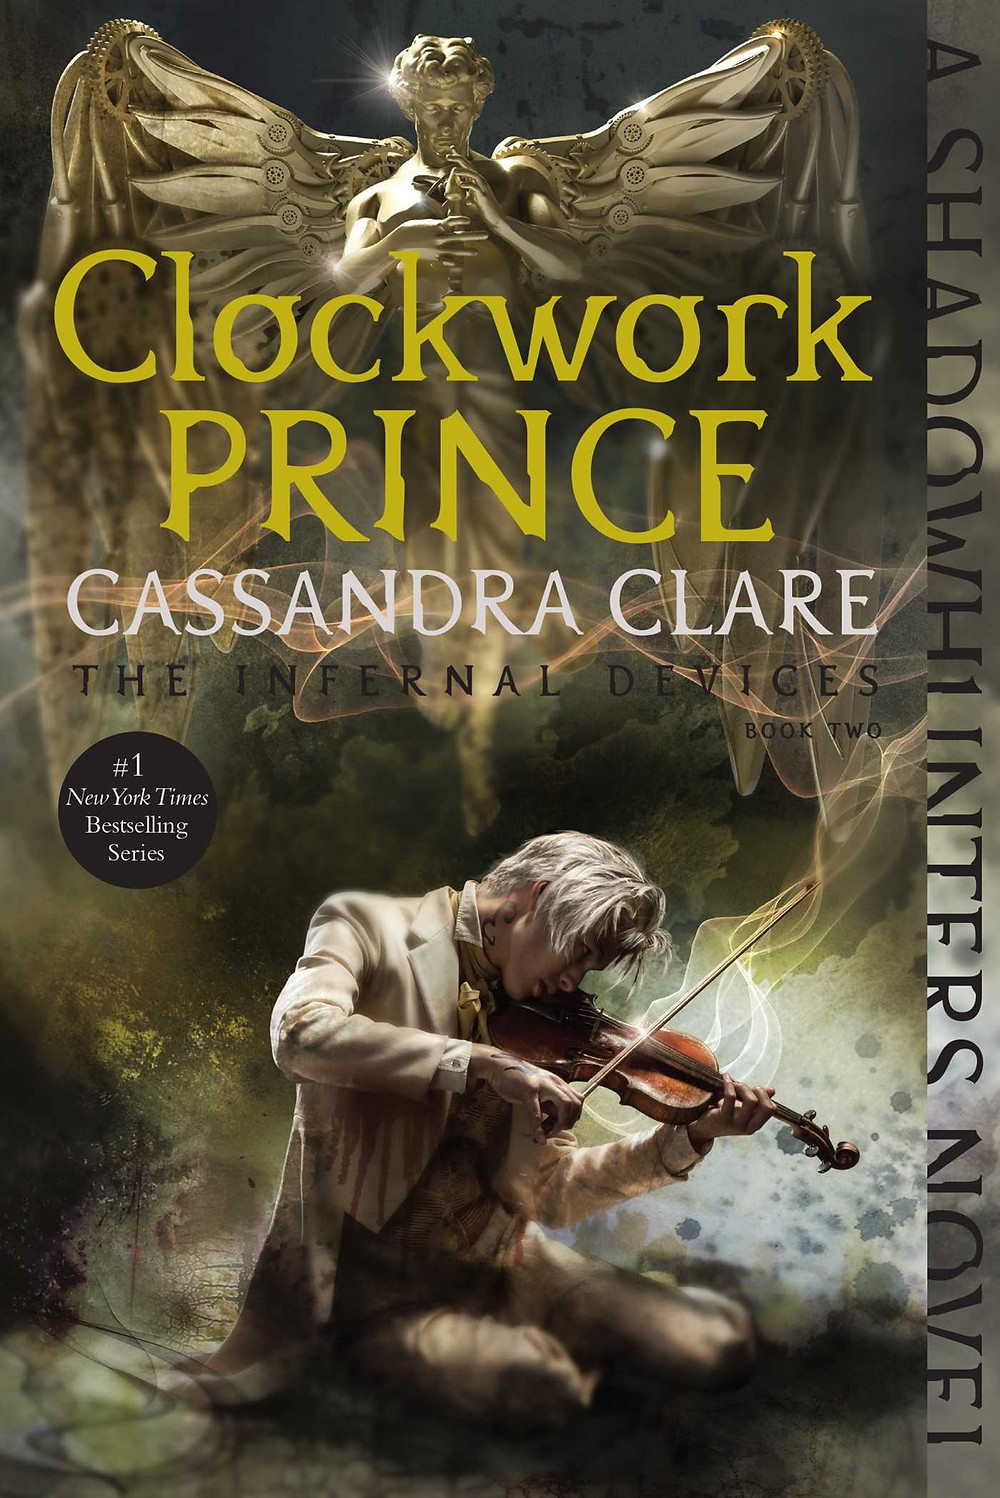 Book Review of Clockwork Prince by Cassandra Clare